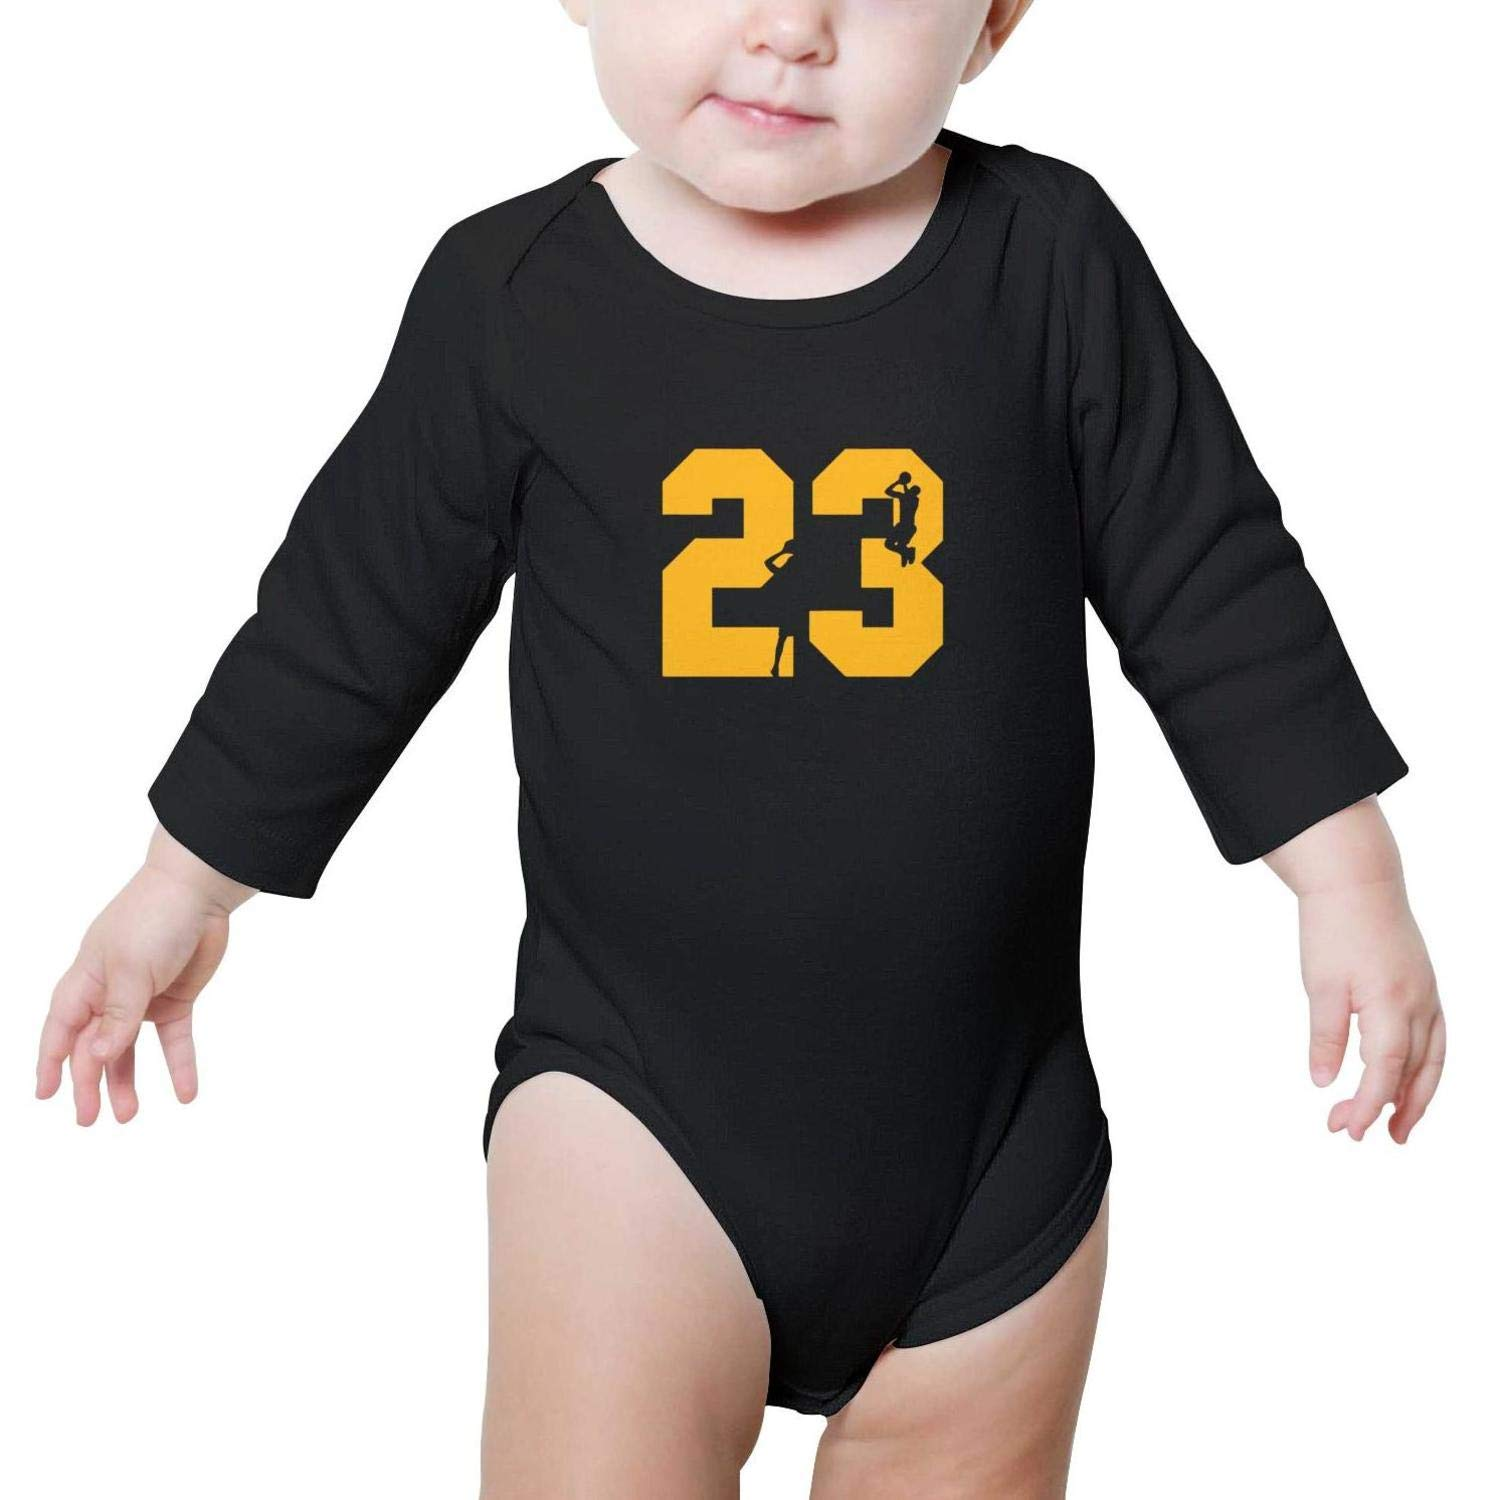 HAPPOBASKA La-Bron-23 Baby Boys Girls Cute Baby Bodysuit Onesies